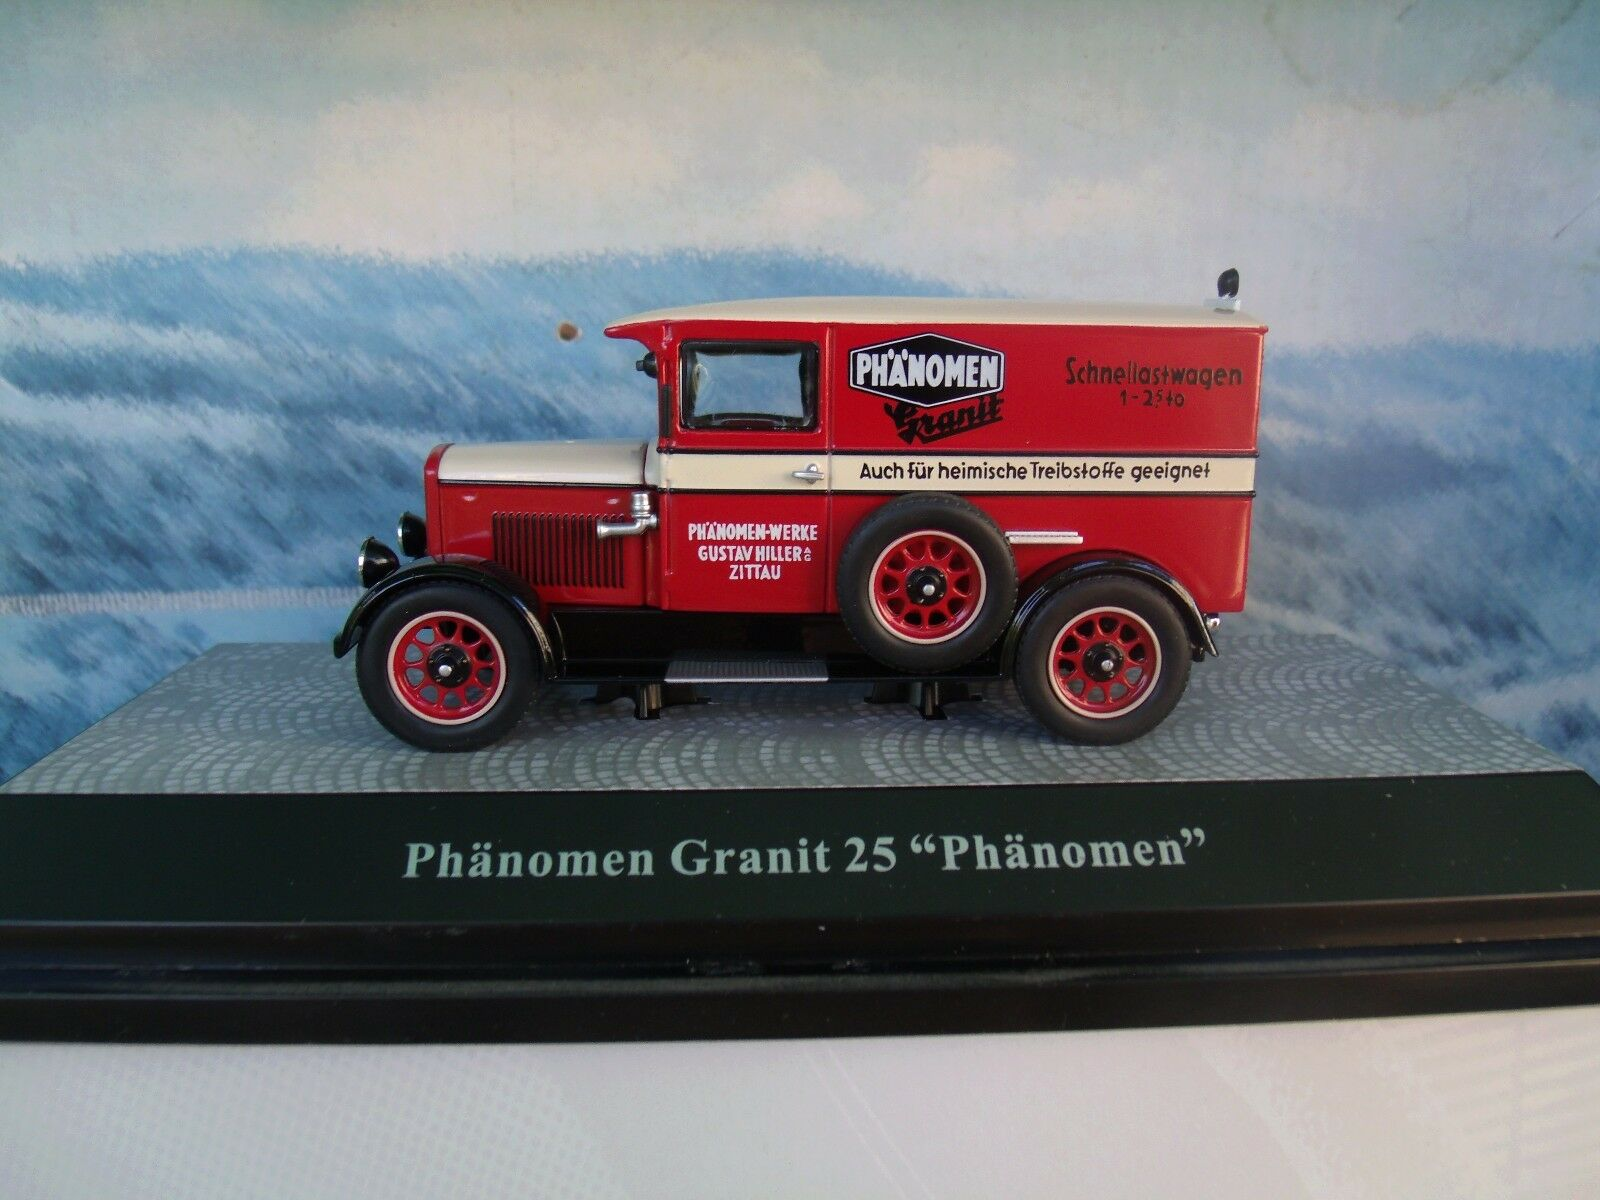 1 1 1 43 PREMIUM CLASSIXXs  Phanomen Granit 25 limited 1 of 1000 4a5fcc